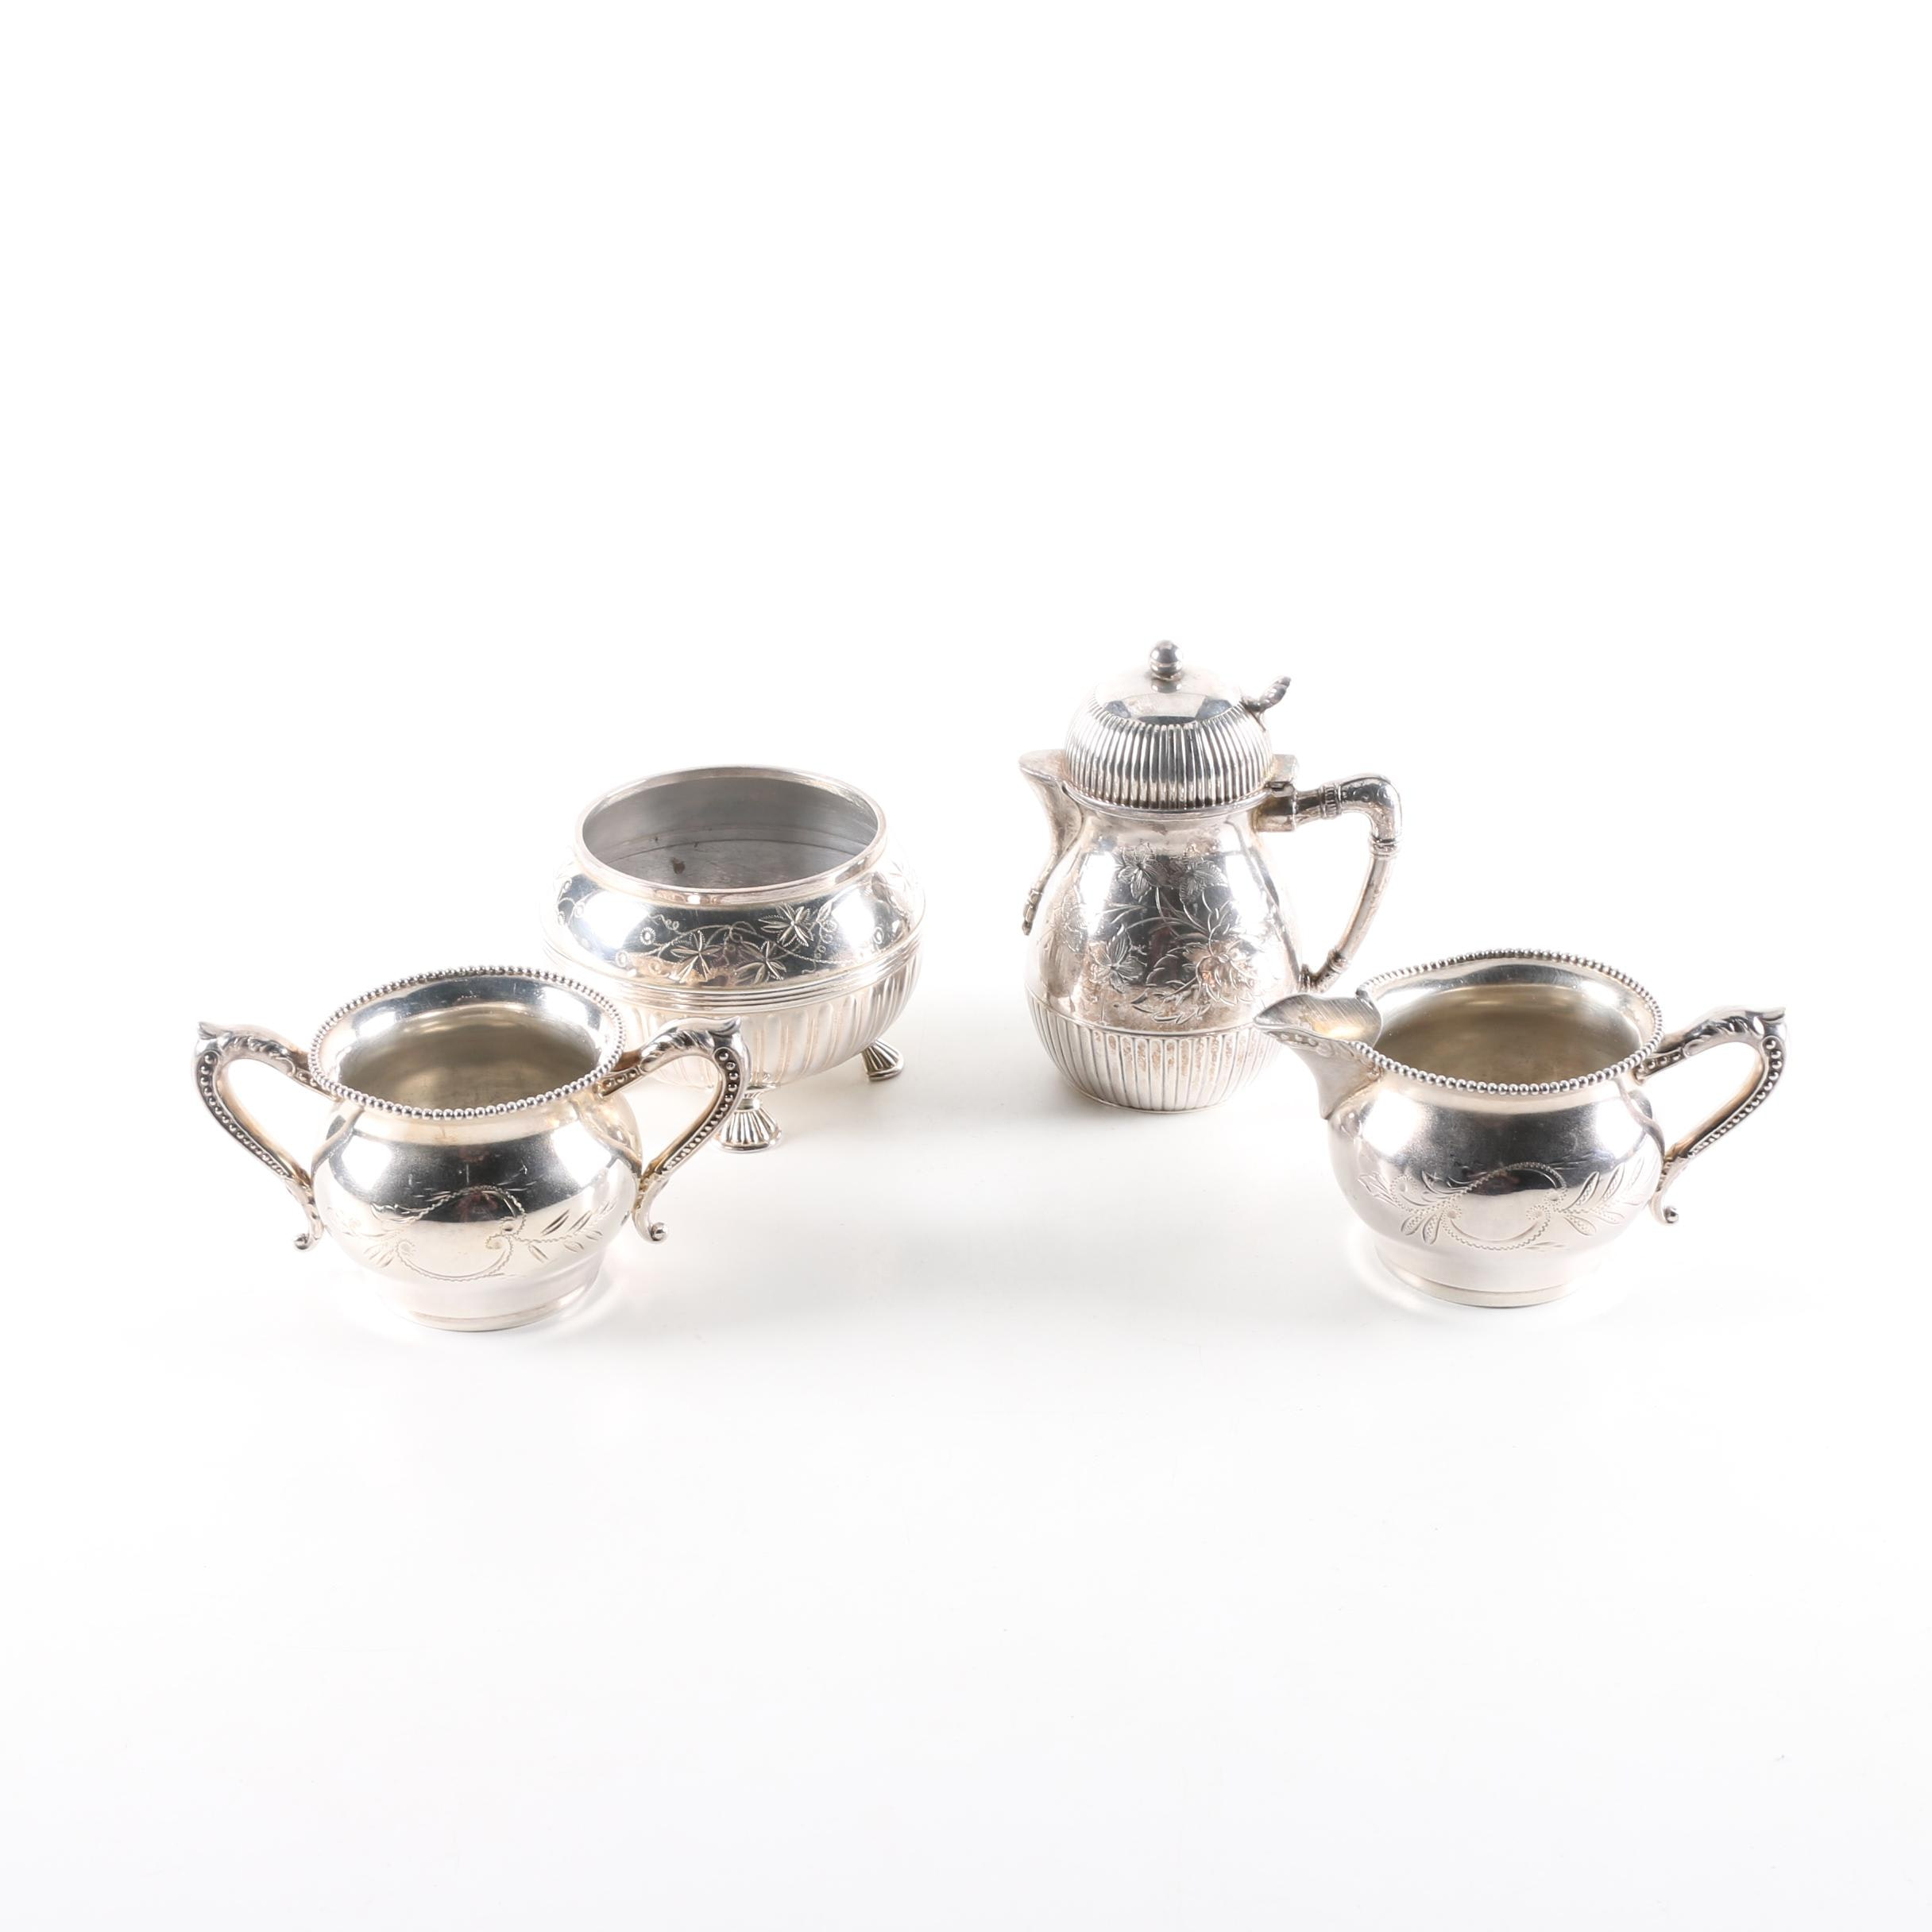 Barbour Bros. Co. Silver Plate Teapot and Other Tableware